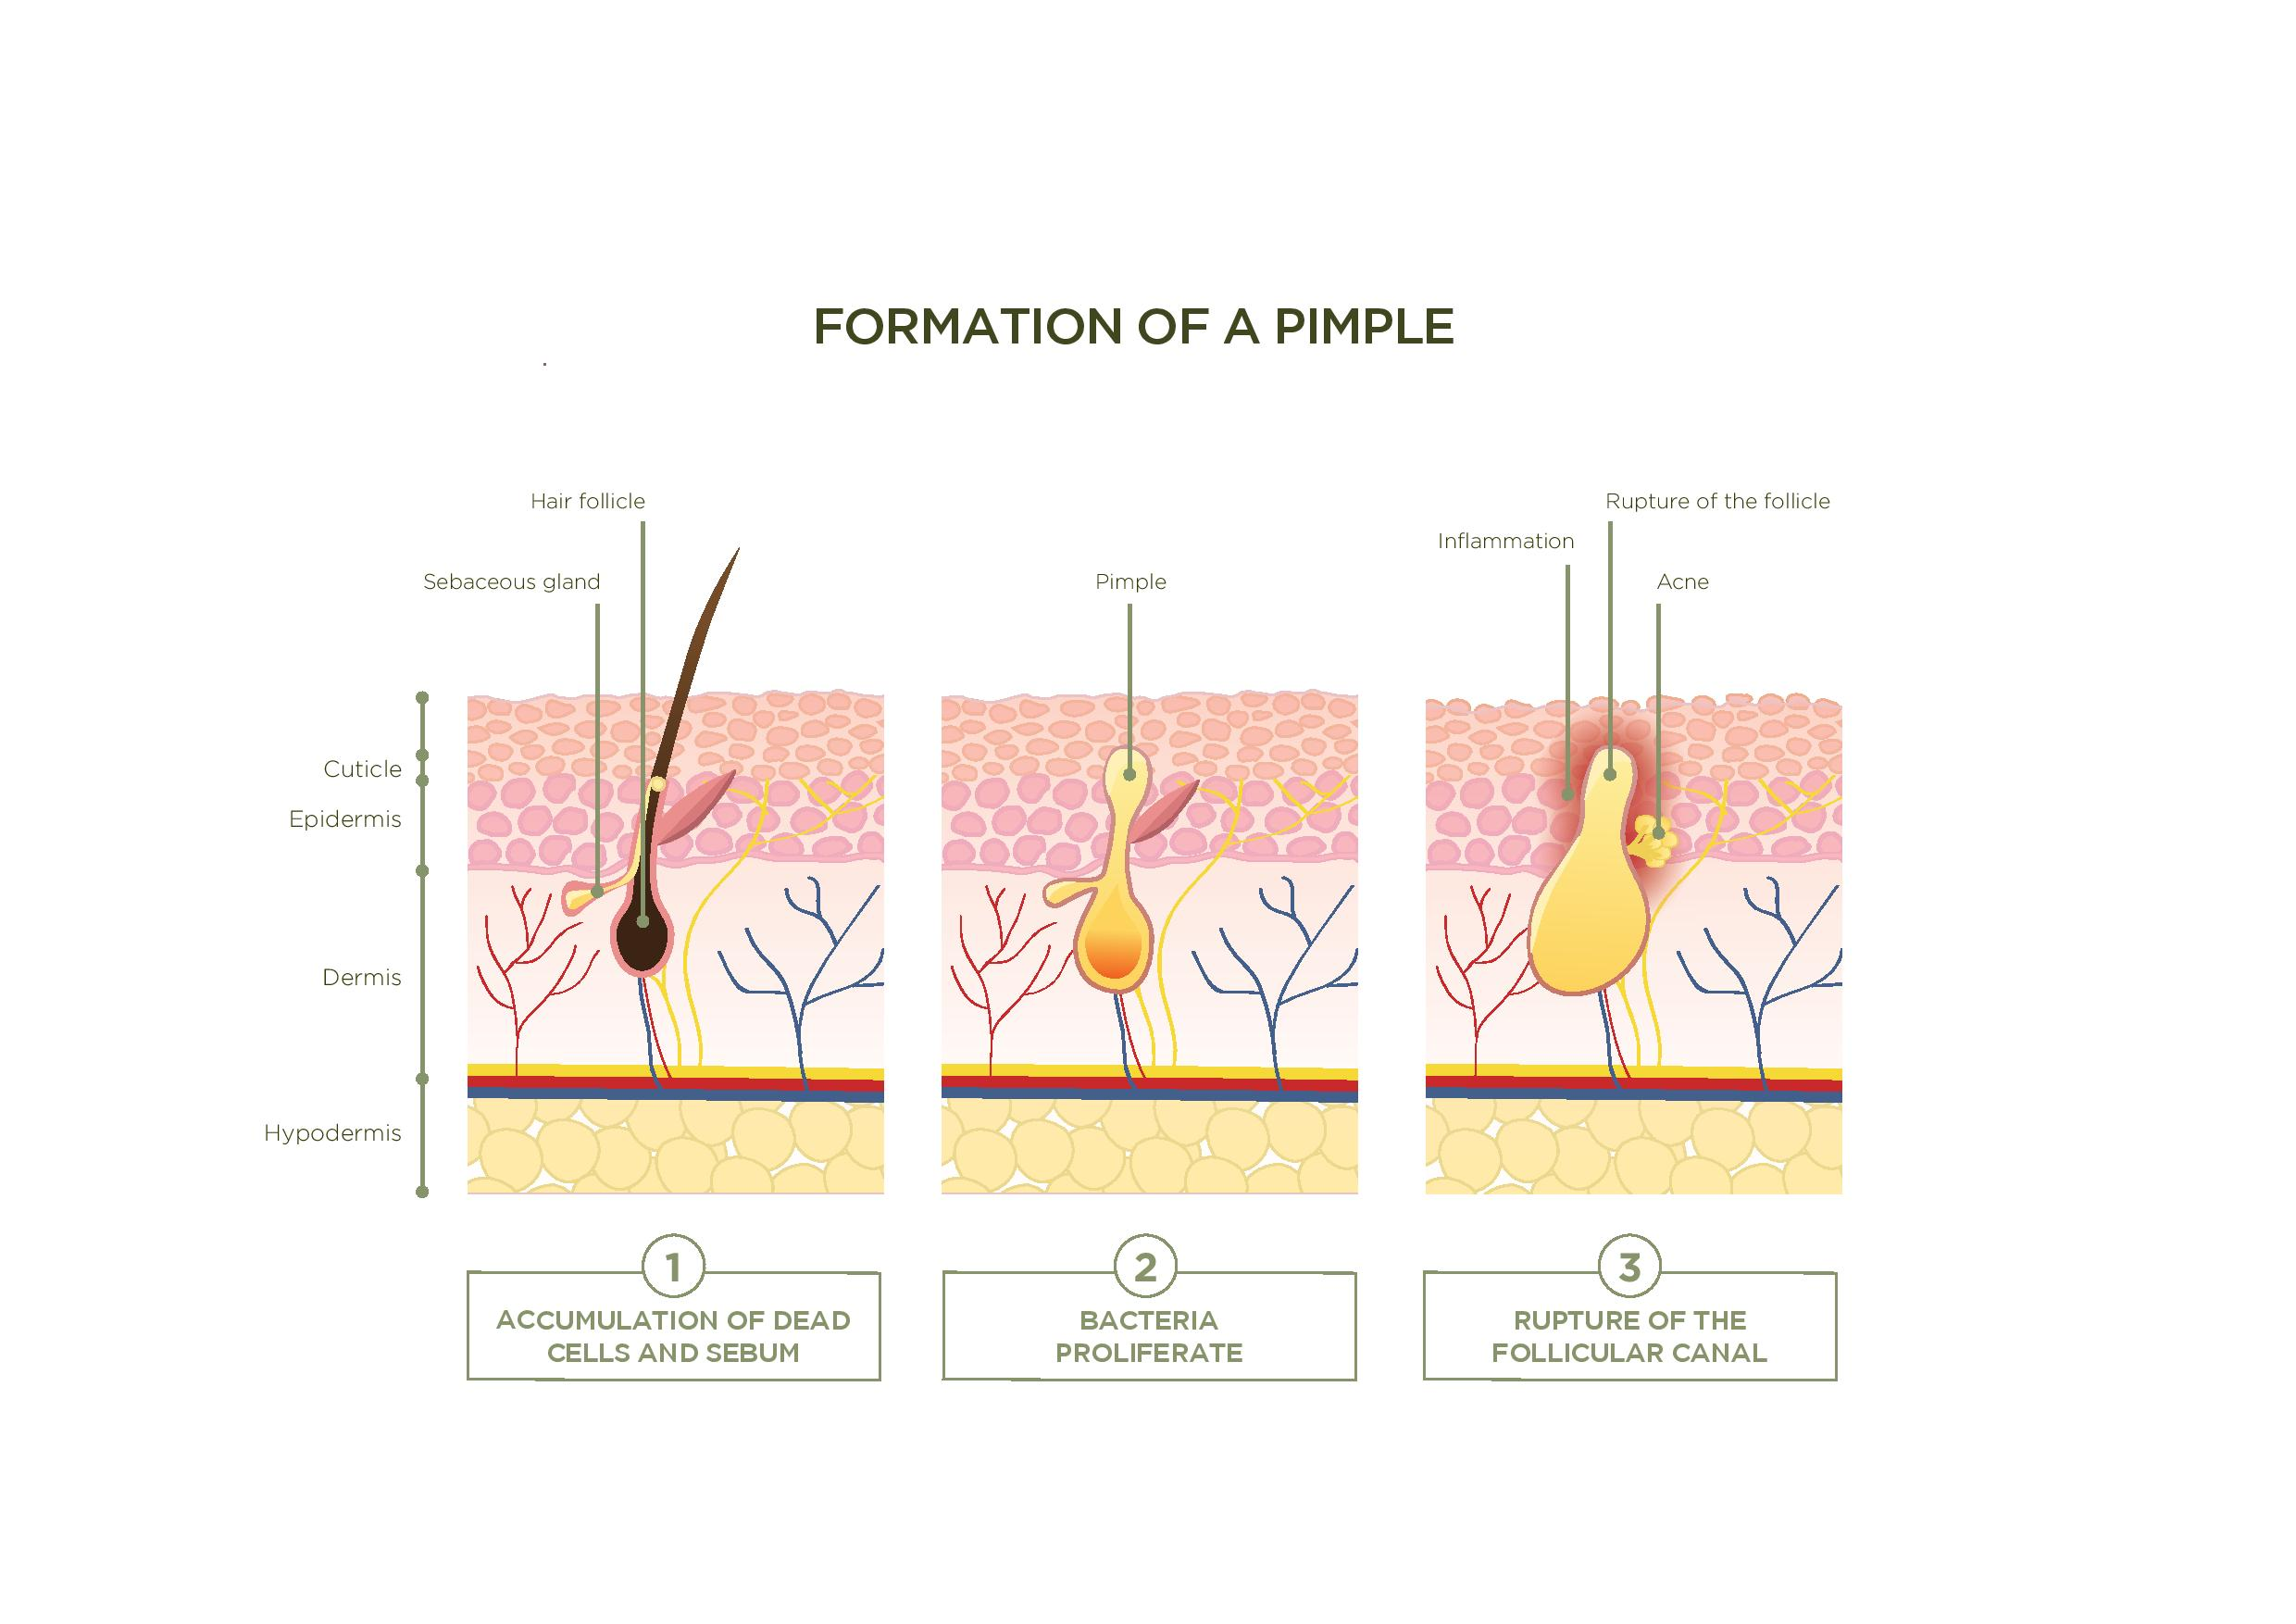 blog - the formation of a pimple: did you know that ... back skeleton diagram back acne diagram